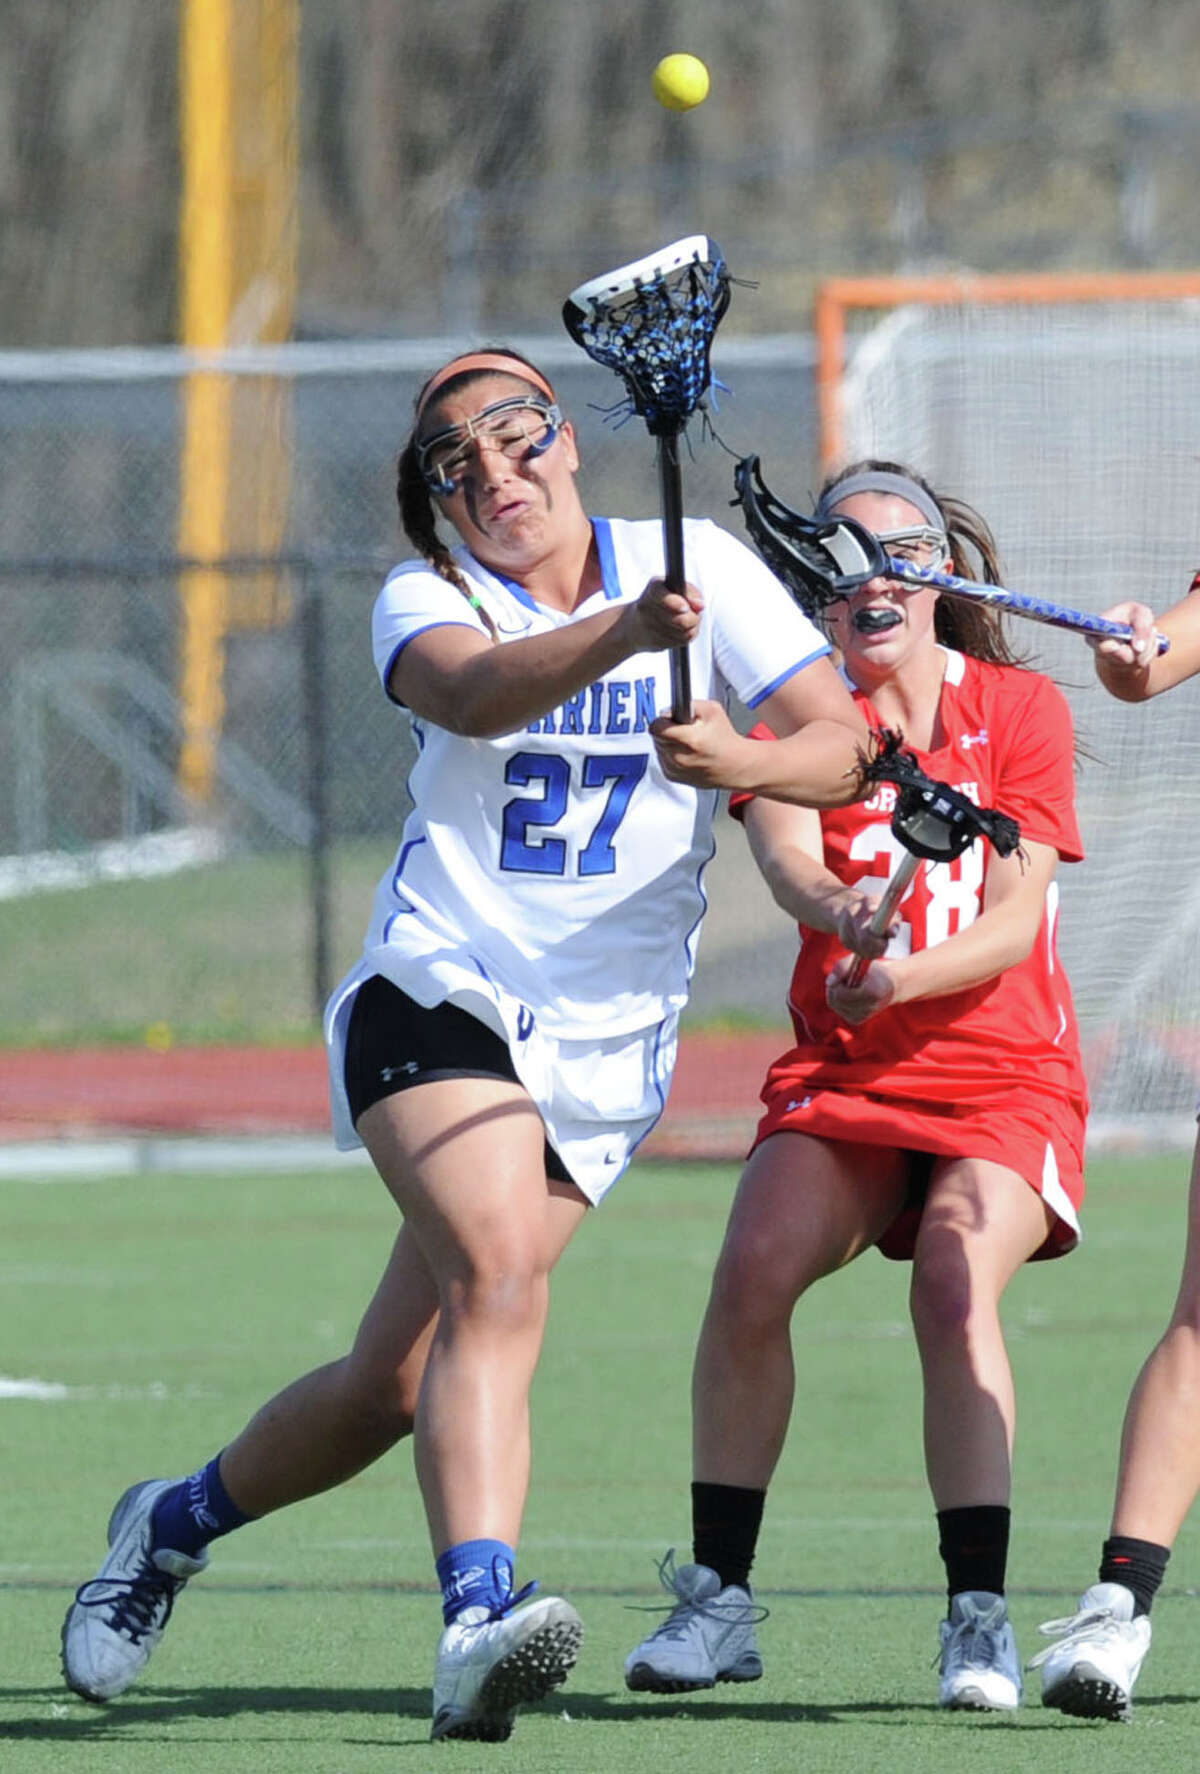 At left, Darien's Gabby Noto (#27) goes for a loose ball against Clare Loughran (#28) of Greenwich, right, during the girls high school lacrosse match between Darien High School and Greenwich High School at Darien, Conn., Thursday, April 30, 2015. Darien defeated Greenwich, 20-10.